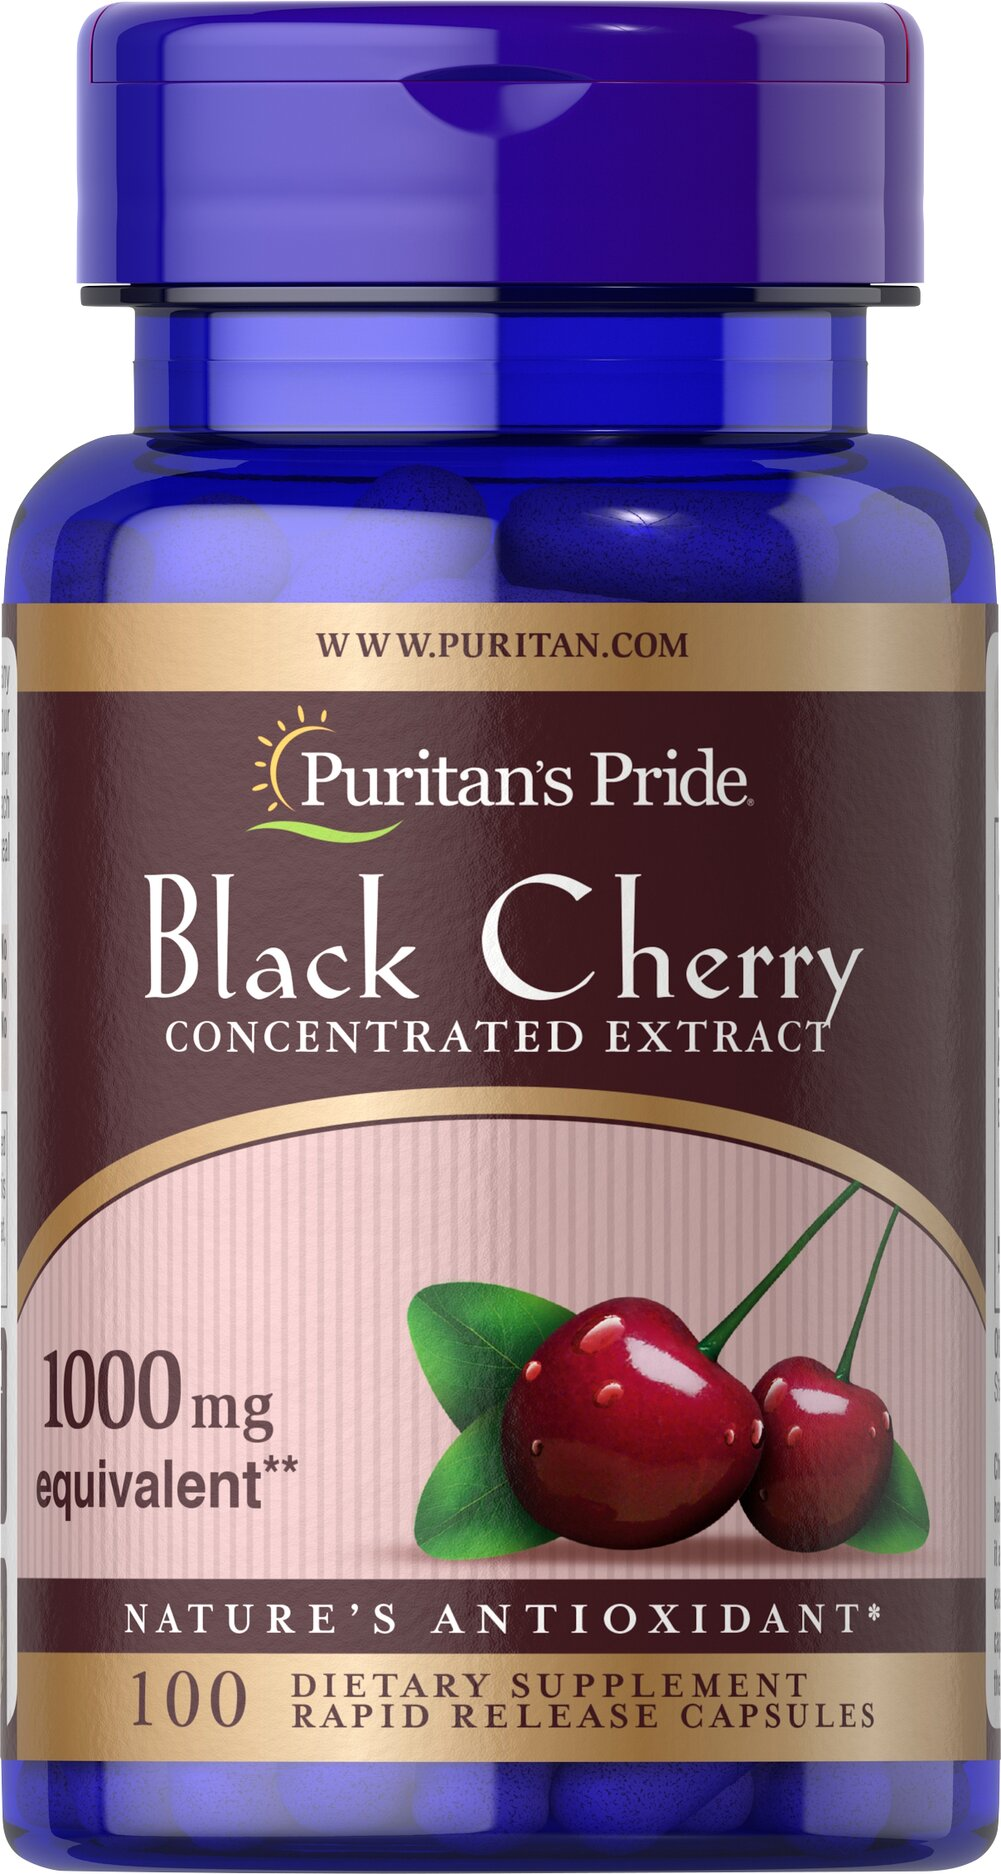 Black Cherry 1000 mg <p>Cherries are known for their natural content of antioxidants and other beneficial components. Black Cherry's beneficial compounds help to give it a rich, dark color that is bursting with nutritional goodness. Now you can easily obtain the benefits of Black Cherry in our convenient Black Cherry capsules. Each serving contains a 4:1 extract of Black Cherry to help retain the most important constituents.</p> 100 Capsules 1000 mg $13.99